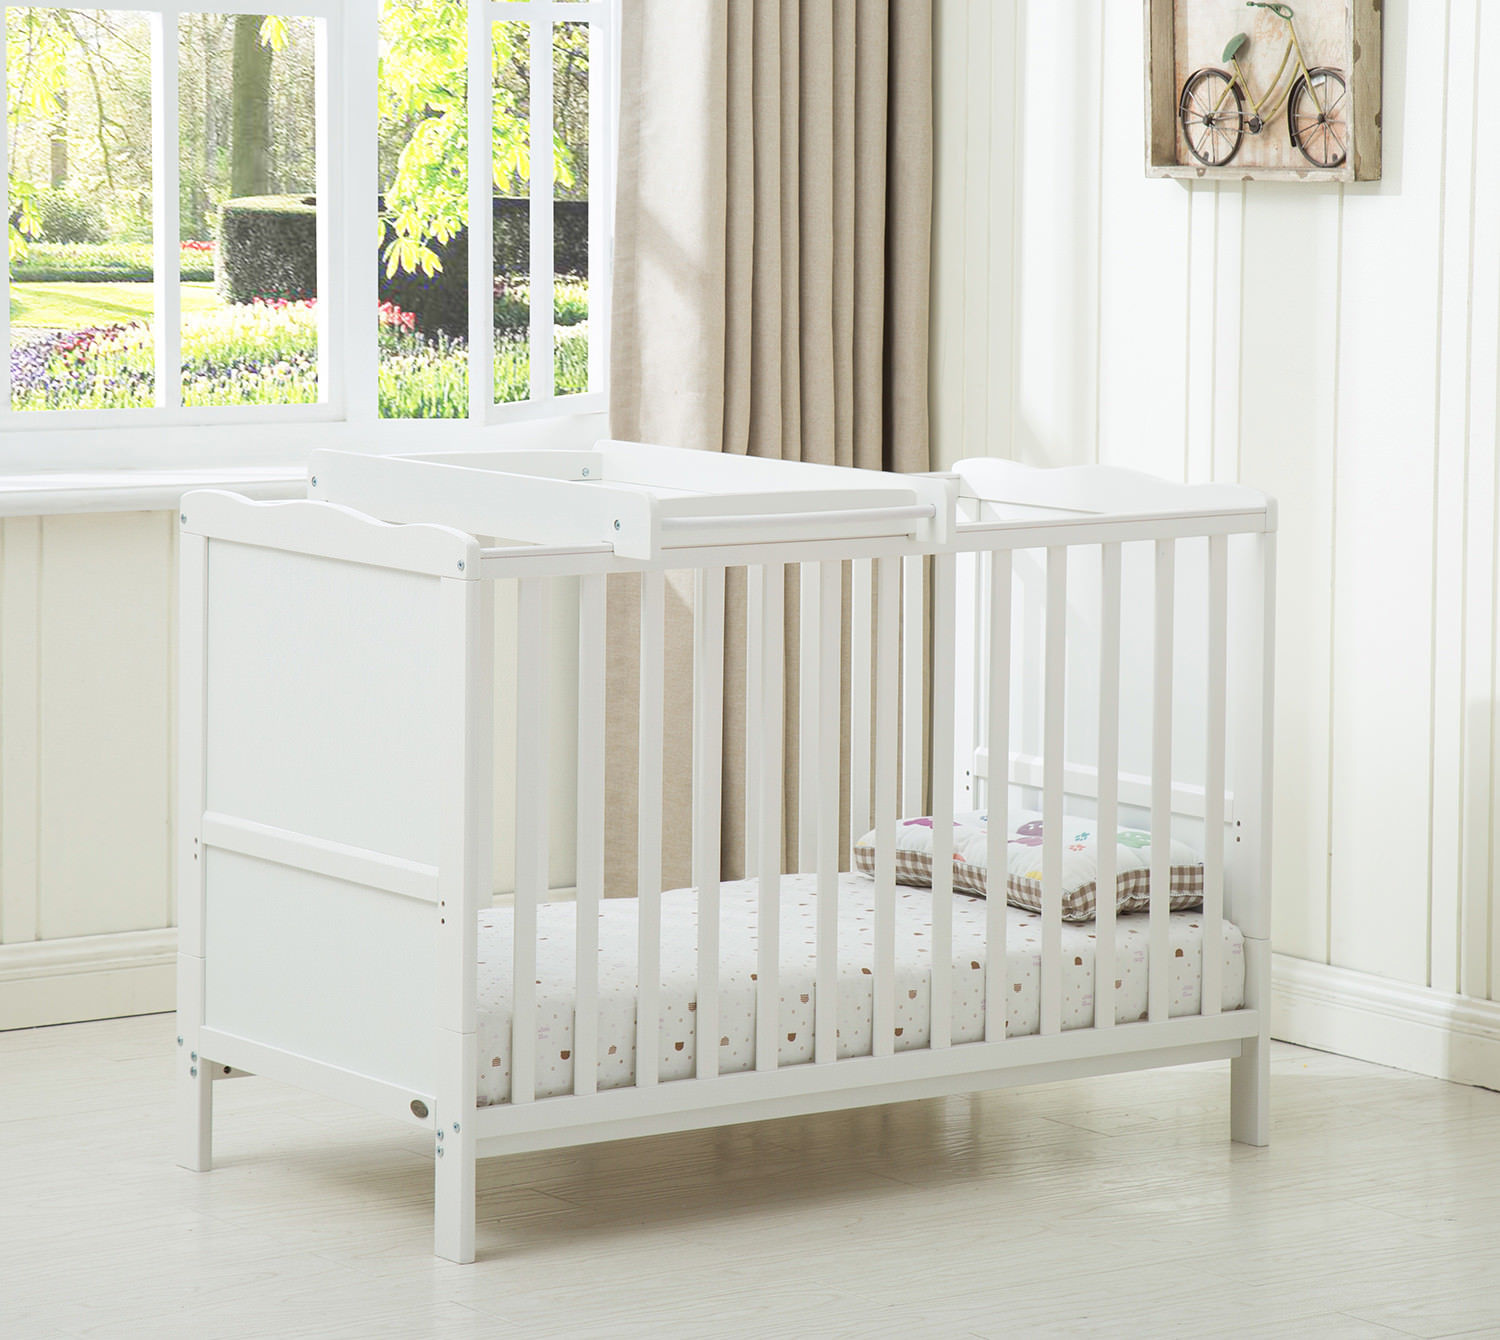 NEW WHITE SOLID WOOD BABY COT BED with TOP CHANGER AND